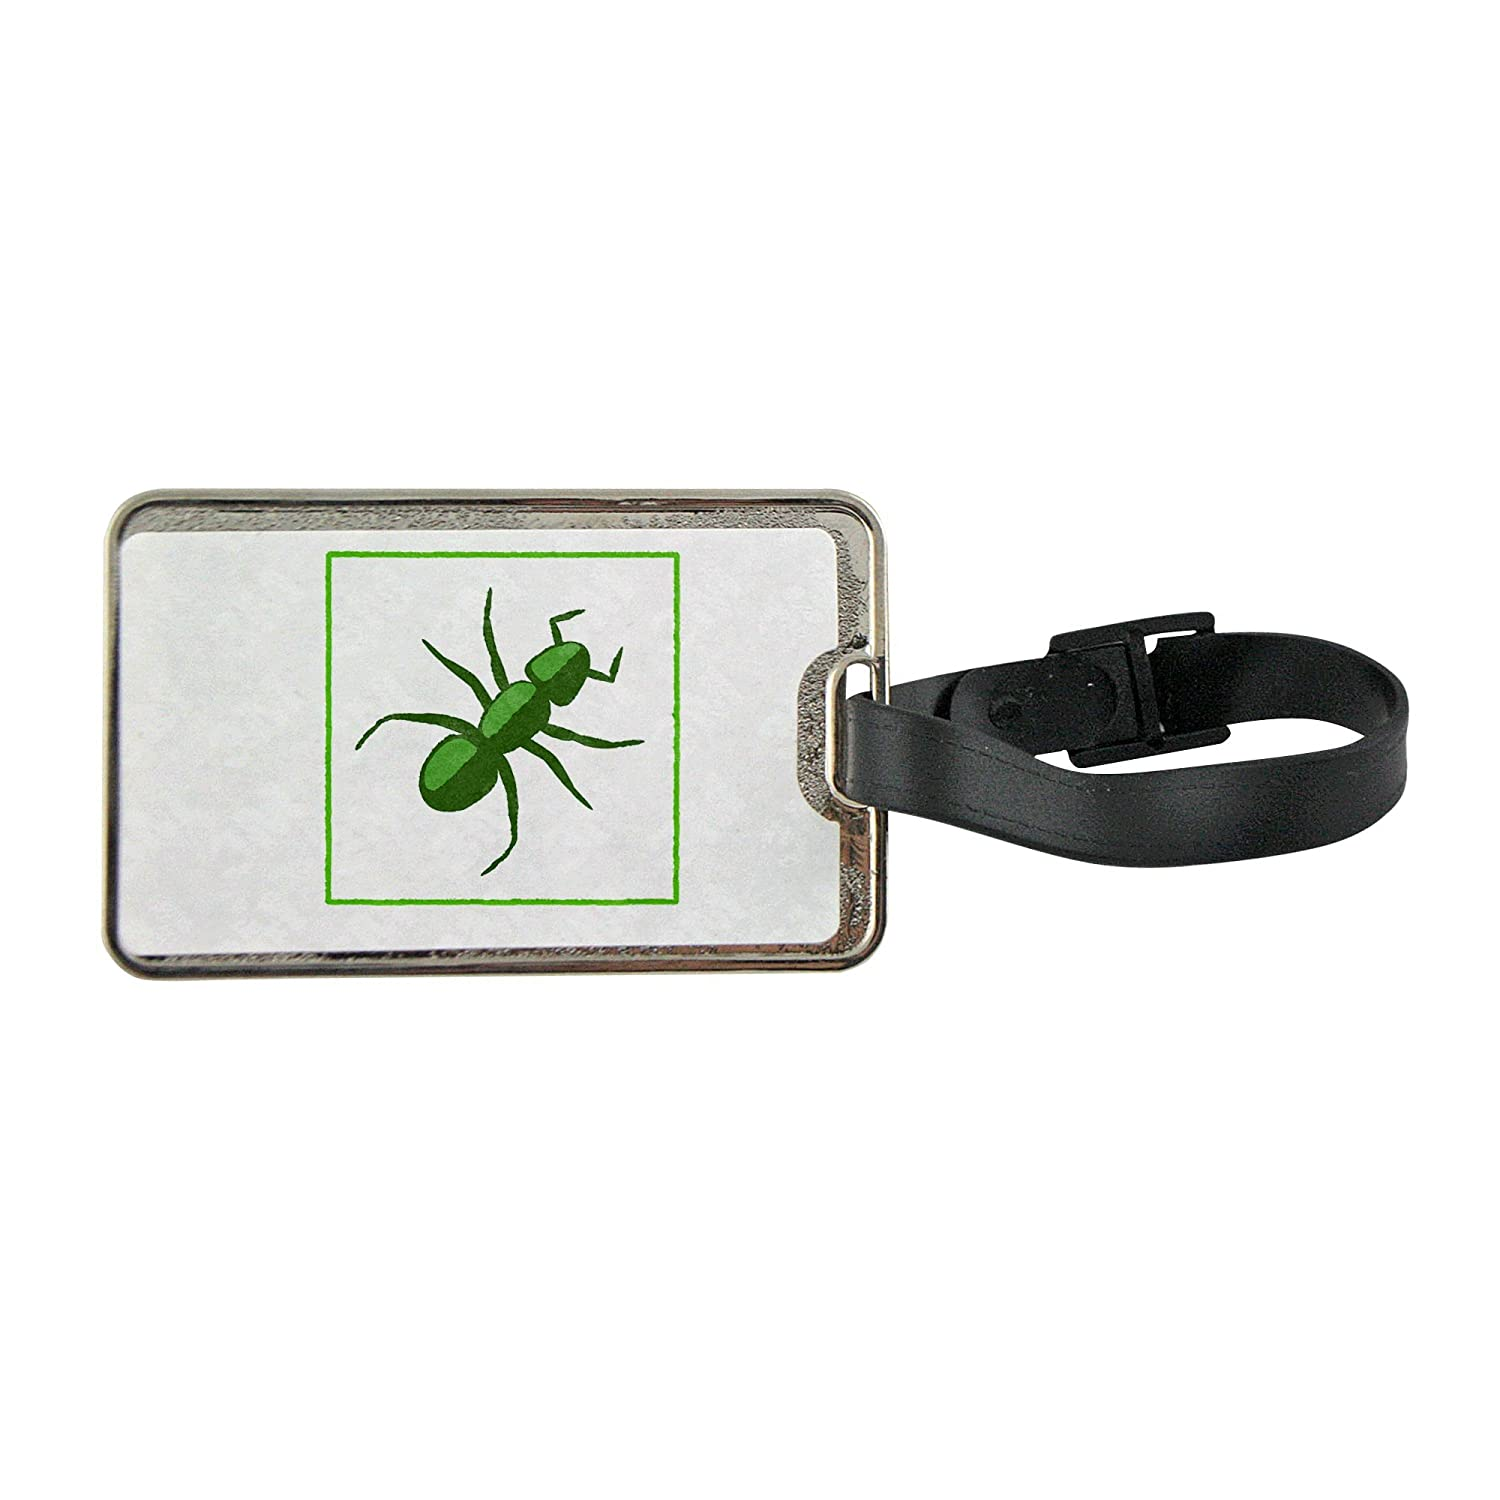 dc733a15e443 Metal luggage tag with An eco green ant icon 50%OFF - soulmystics.com